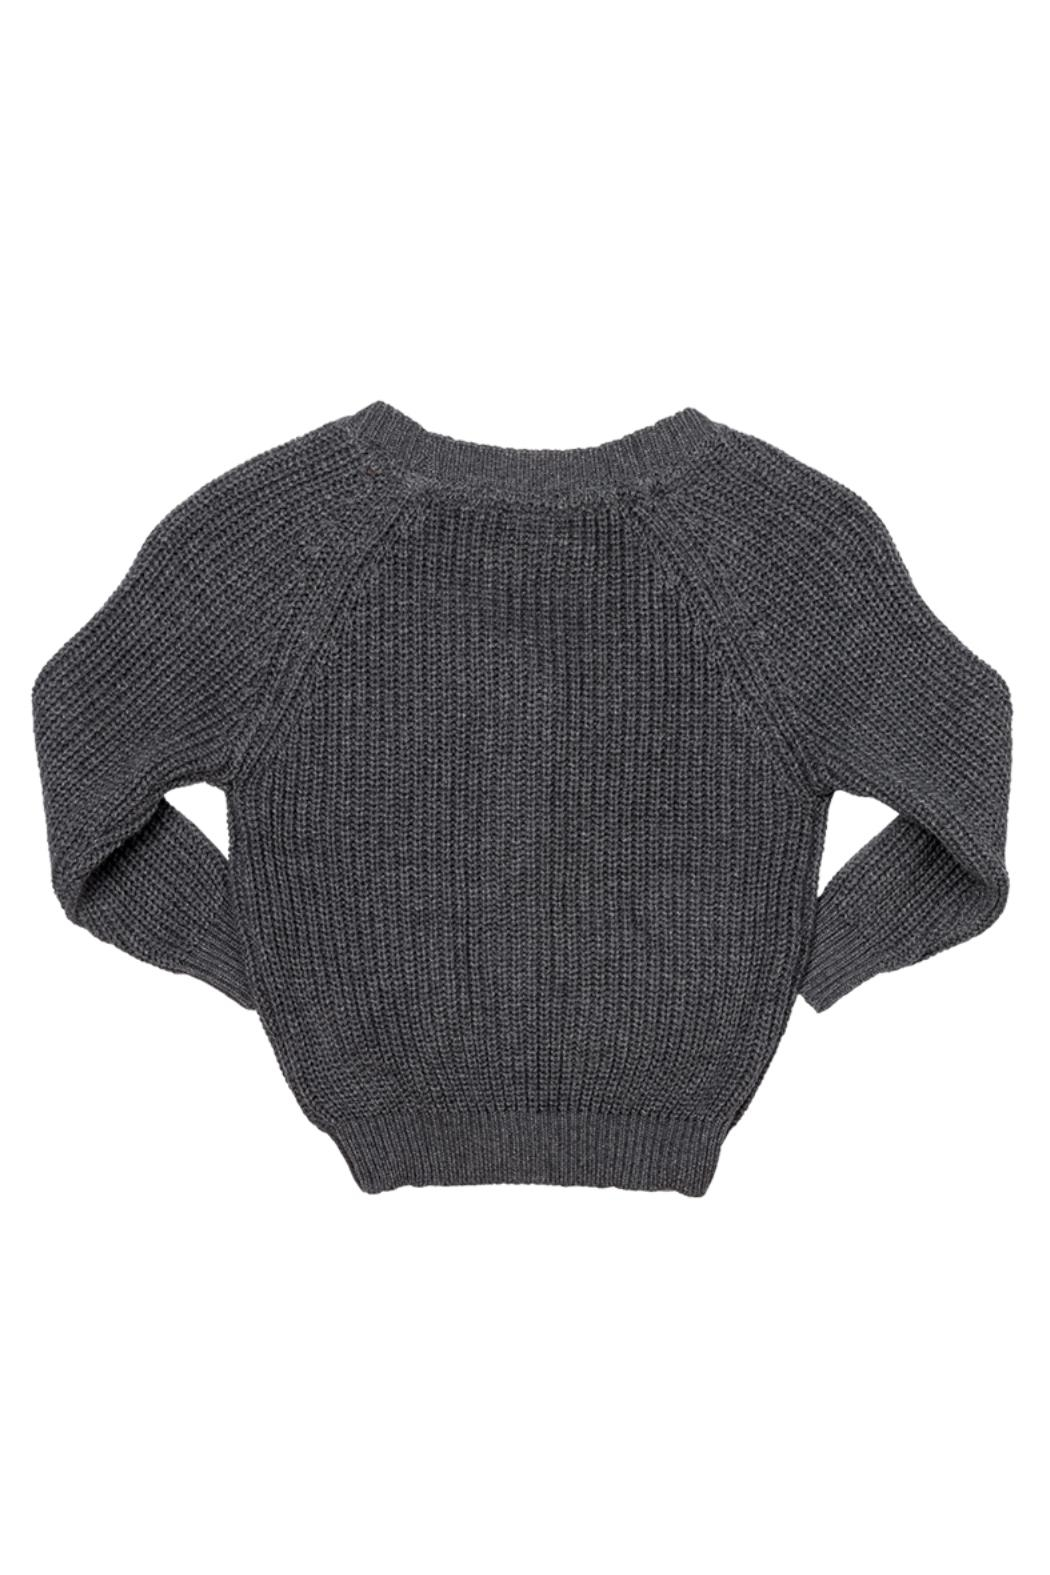 Rock Your Baby Grey Baby Cardigan - Side Cropped Image